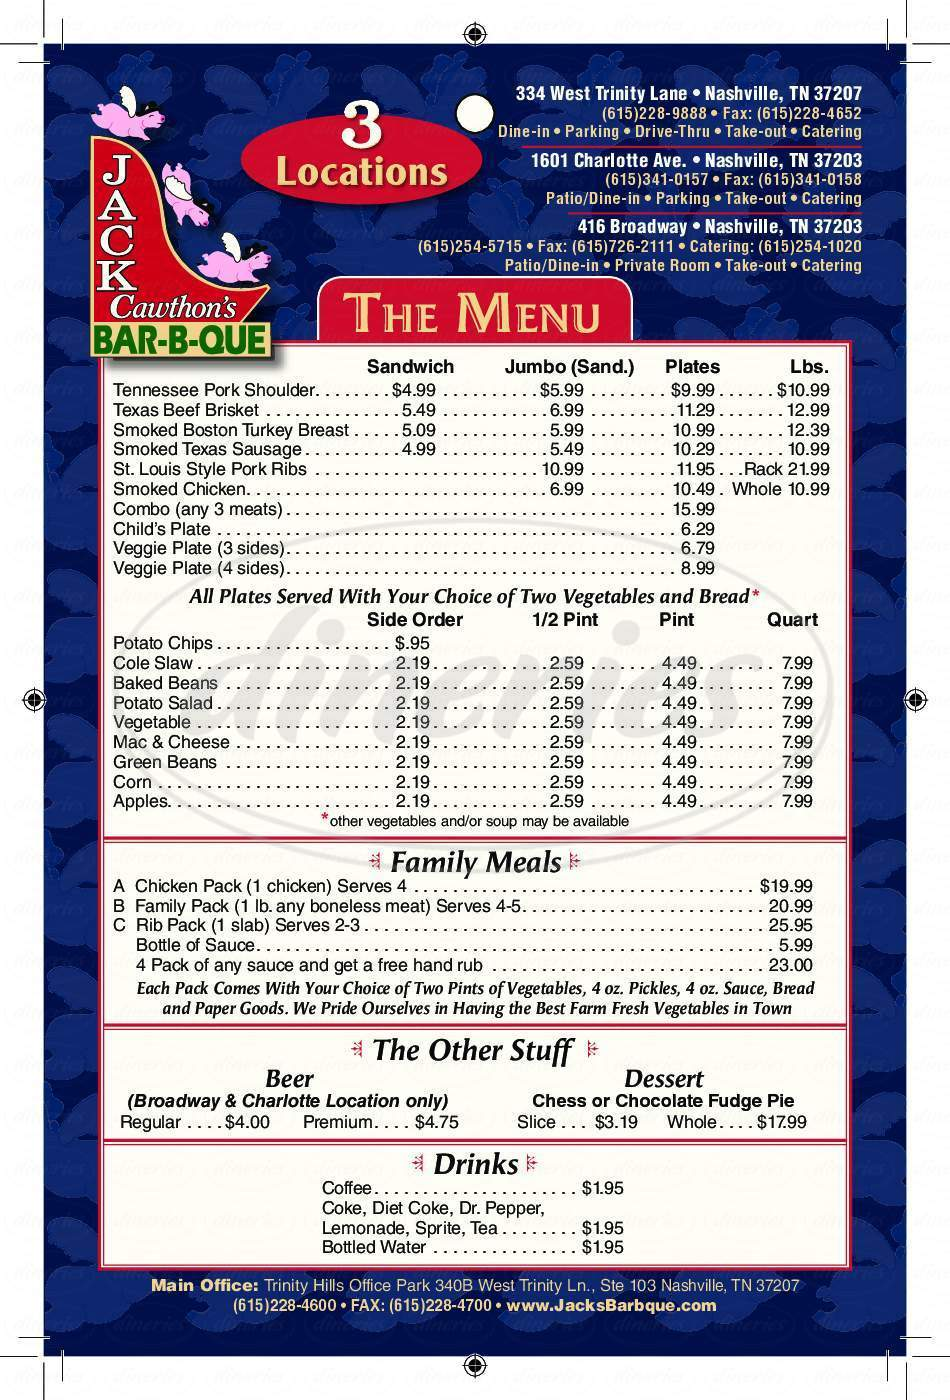 menu for JACK'S BAR-B-QUE